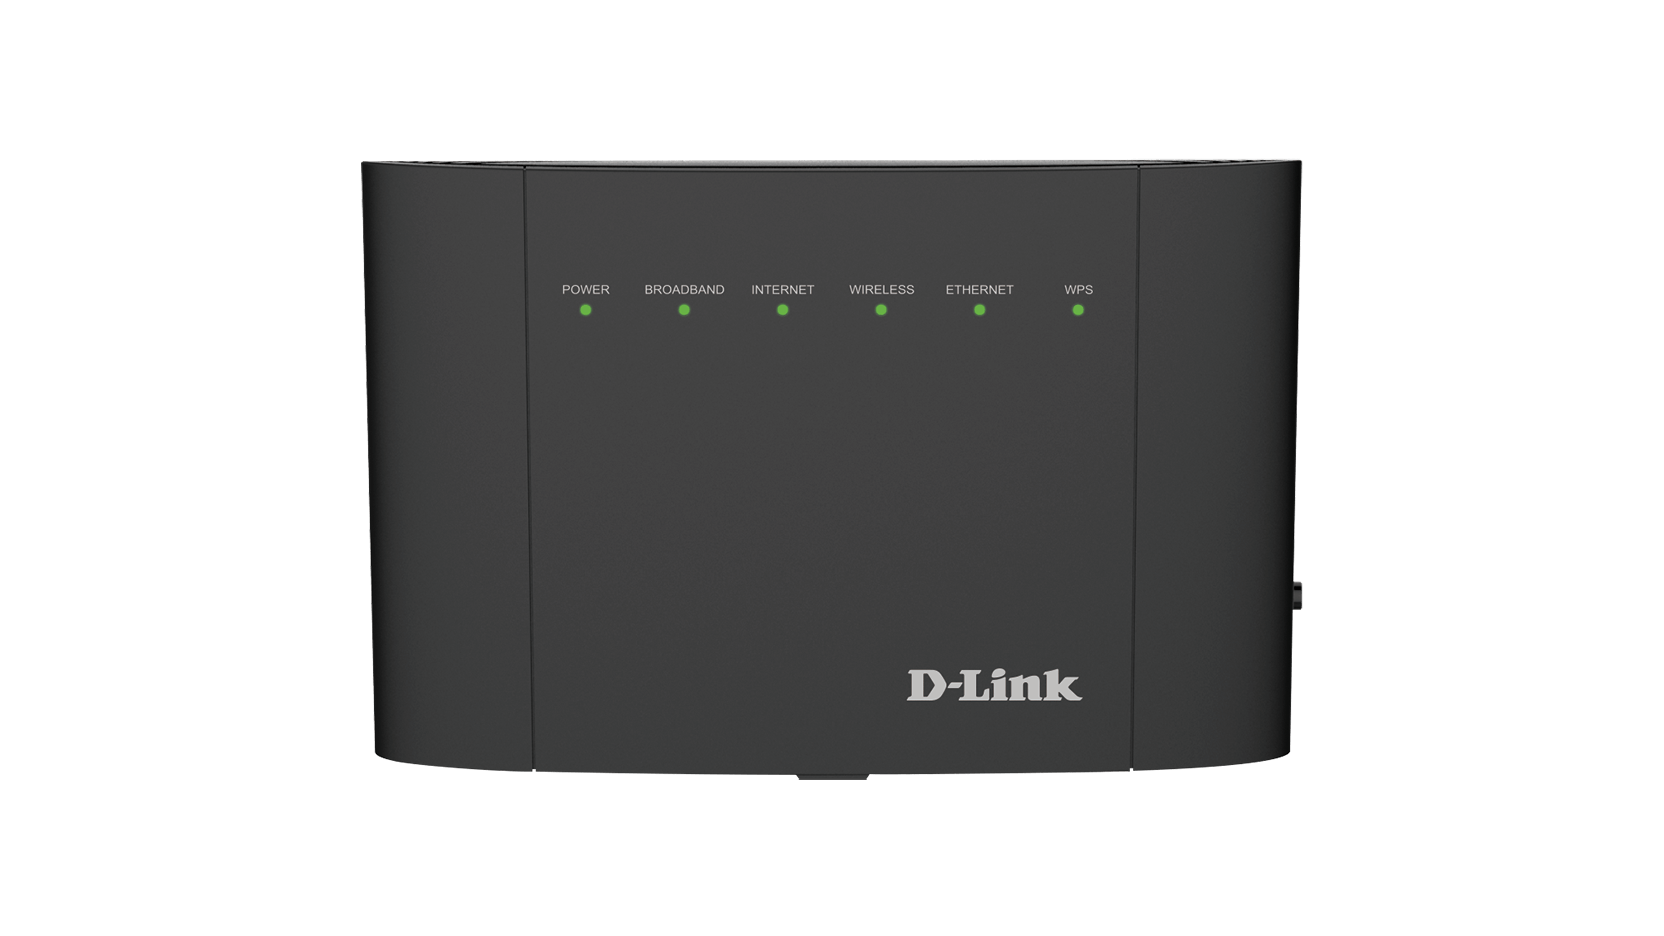 D-Link Wireless AC1200 Dual-Band Gigabit Port VDSL Modem Router